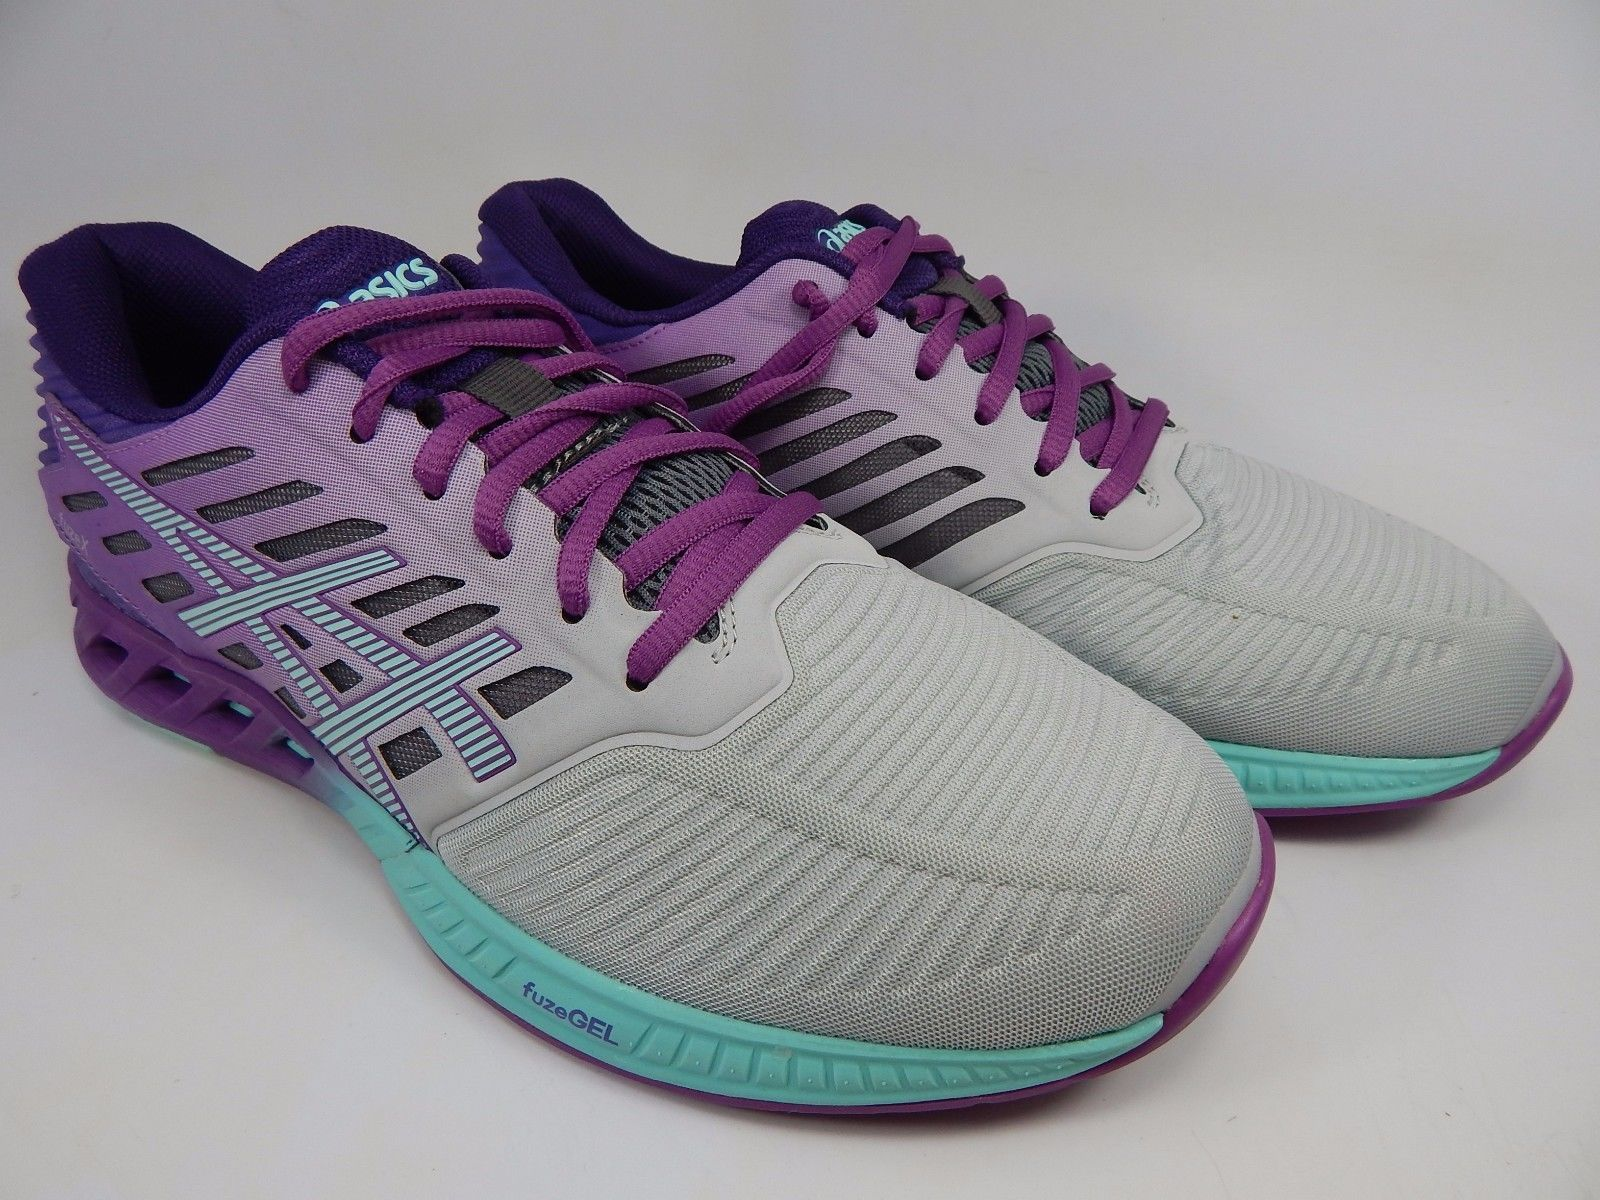 Asics FuseX Women's Running Shoes Size US 9.5 M (B) EU 41.5 Silver Purple T689N